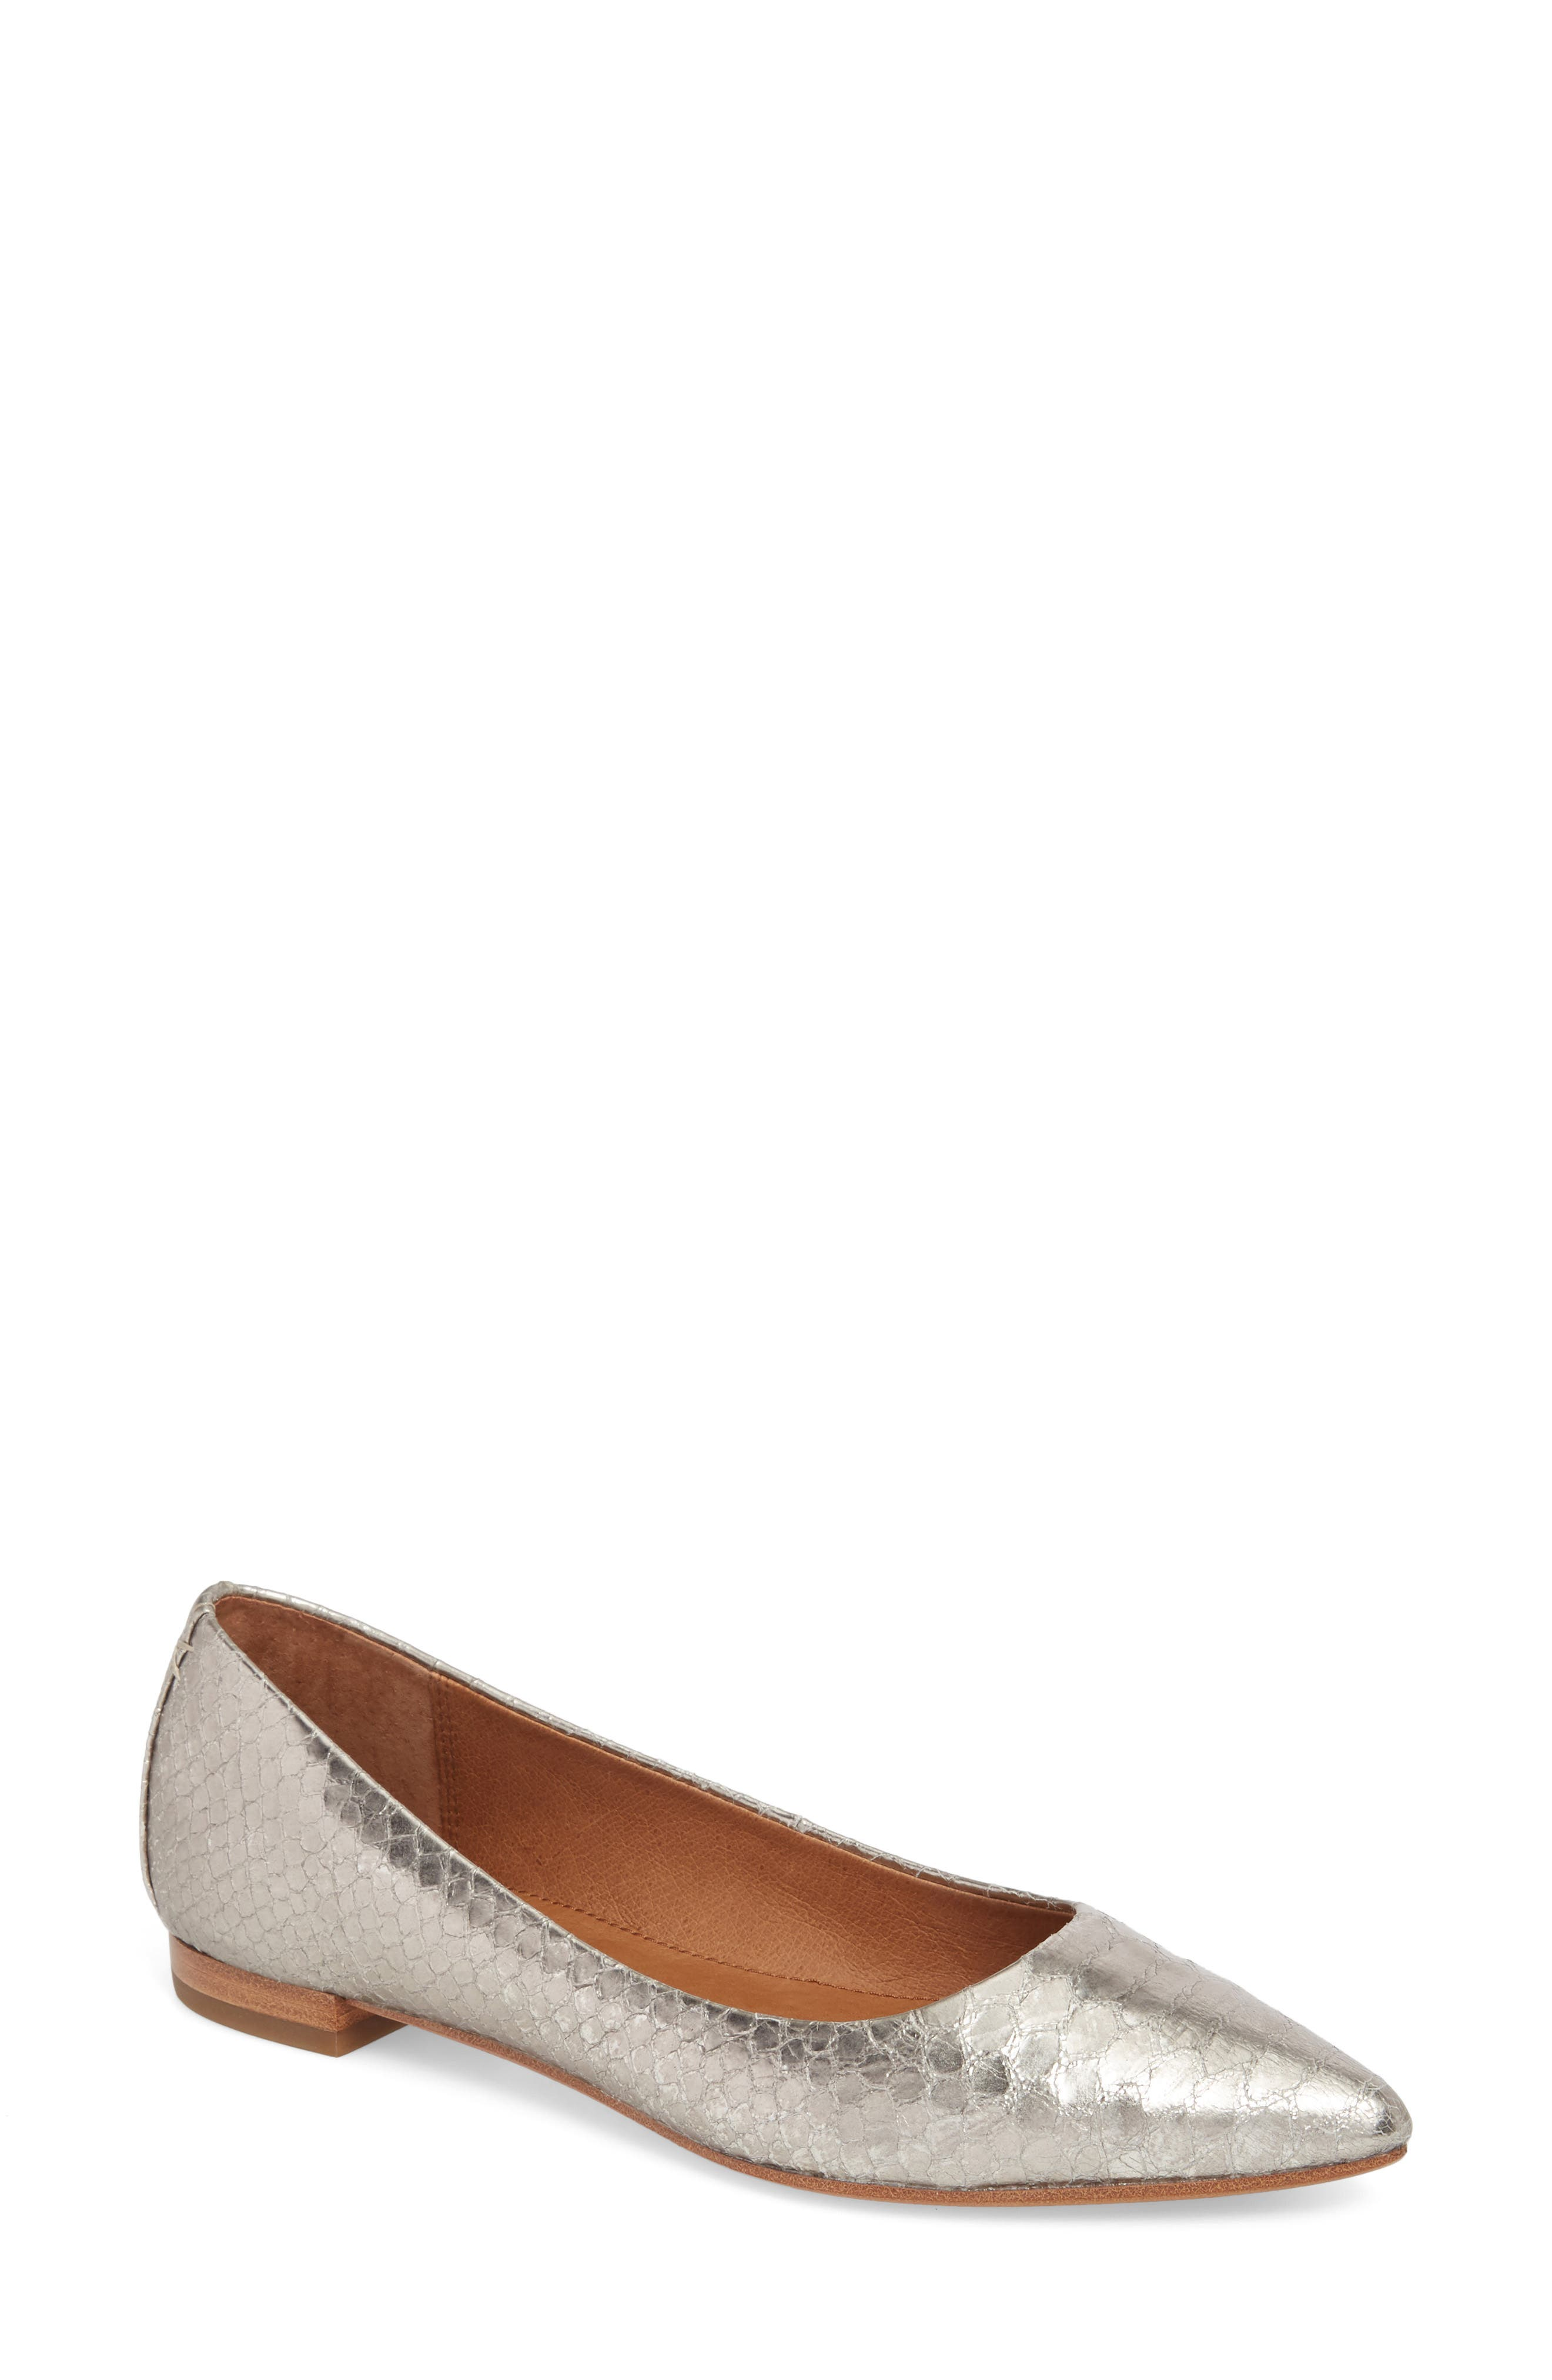 Sienna Pointy Toe Ballet Flat,                         Main,                         color, 040